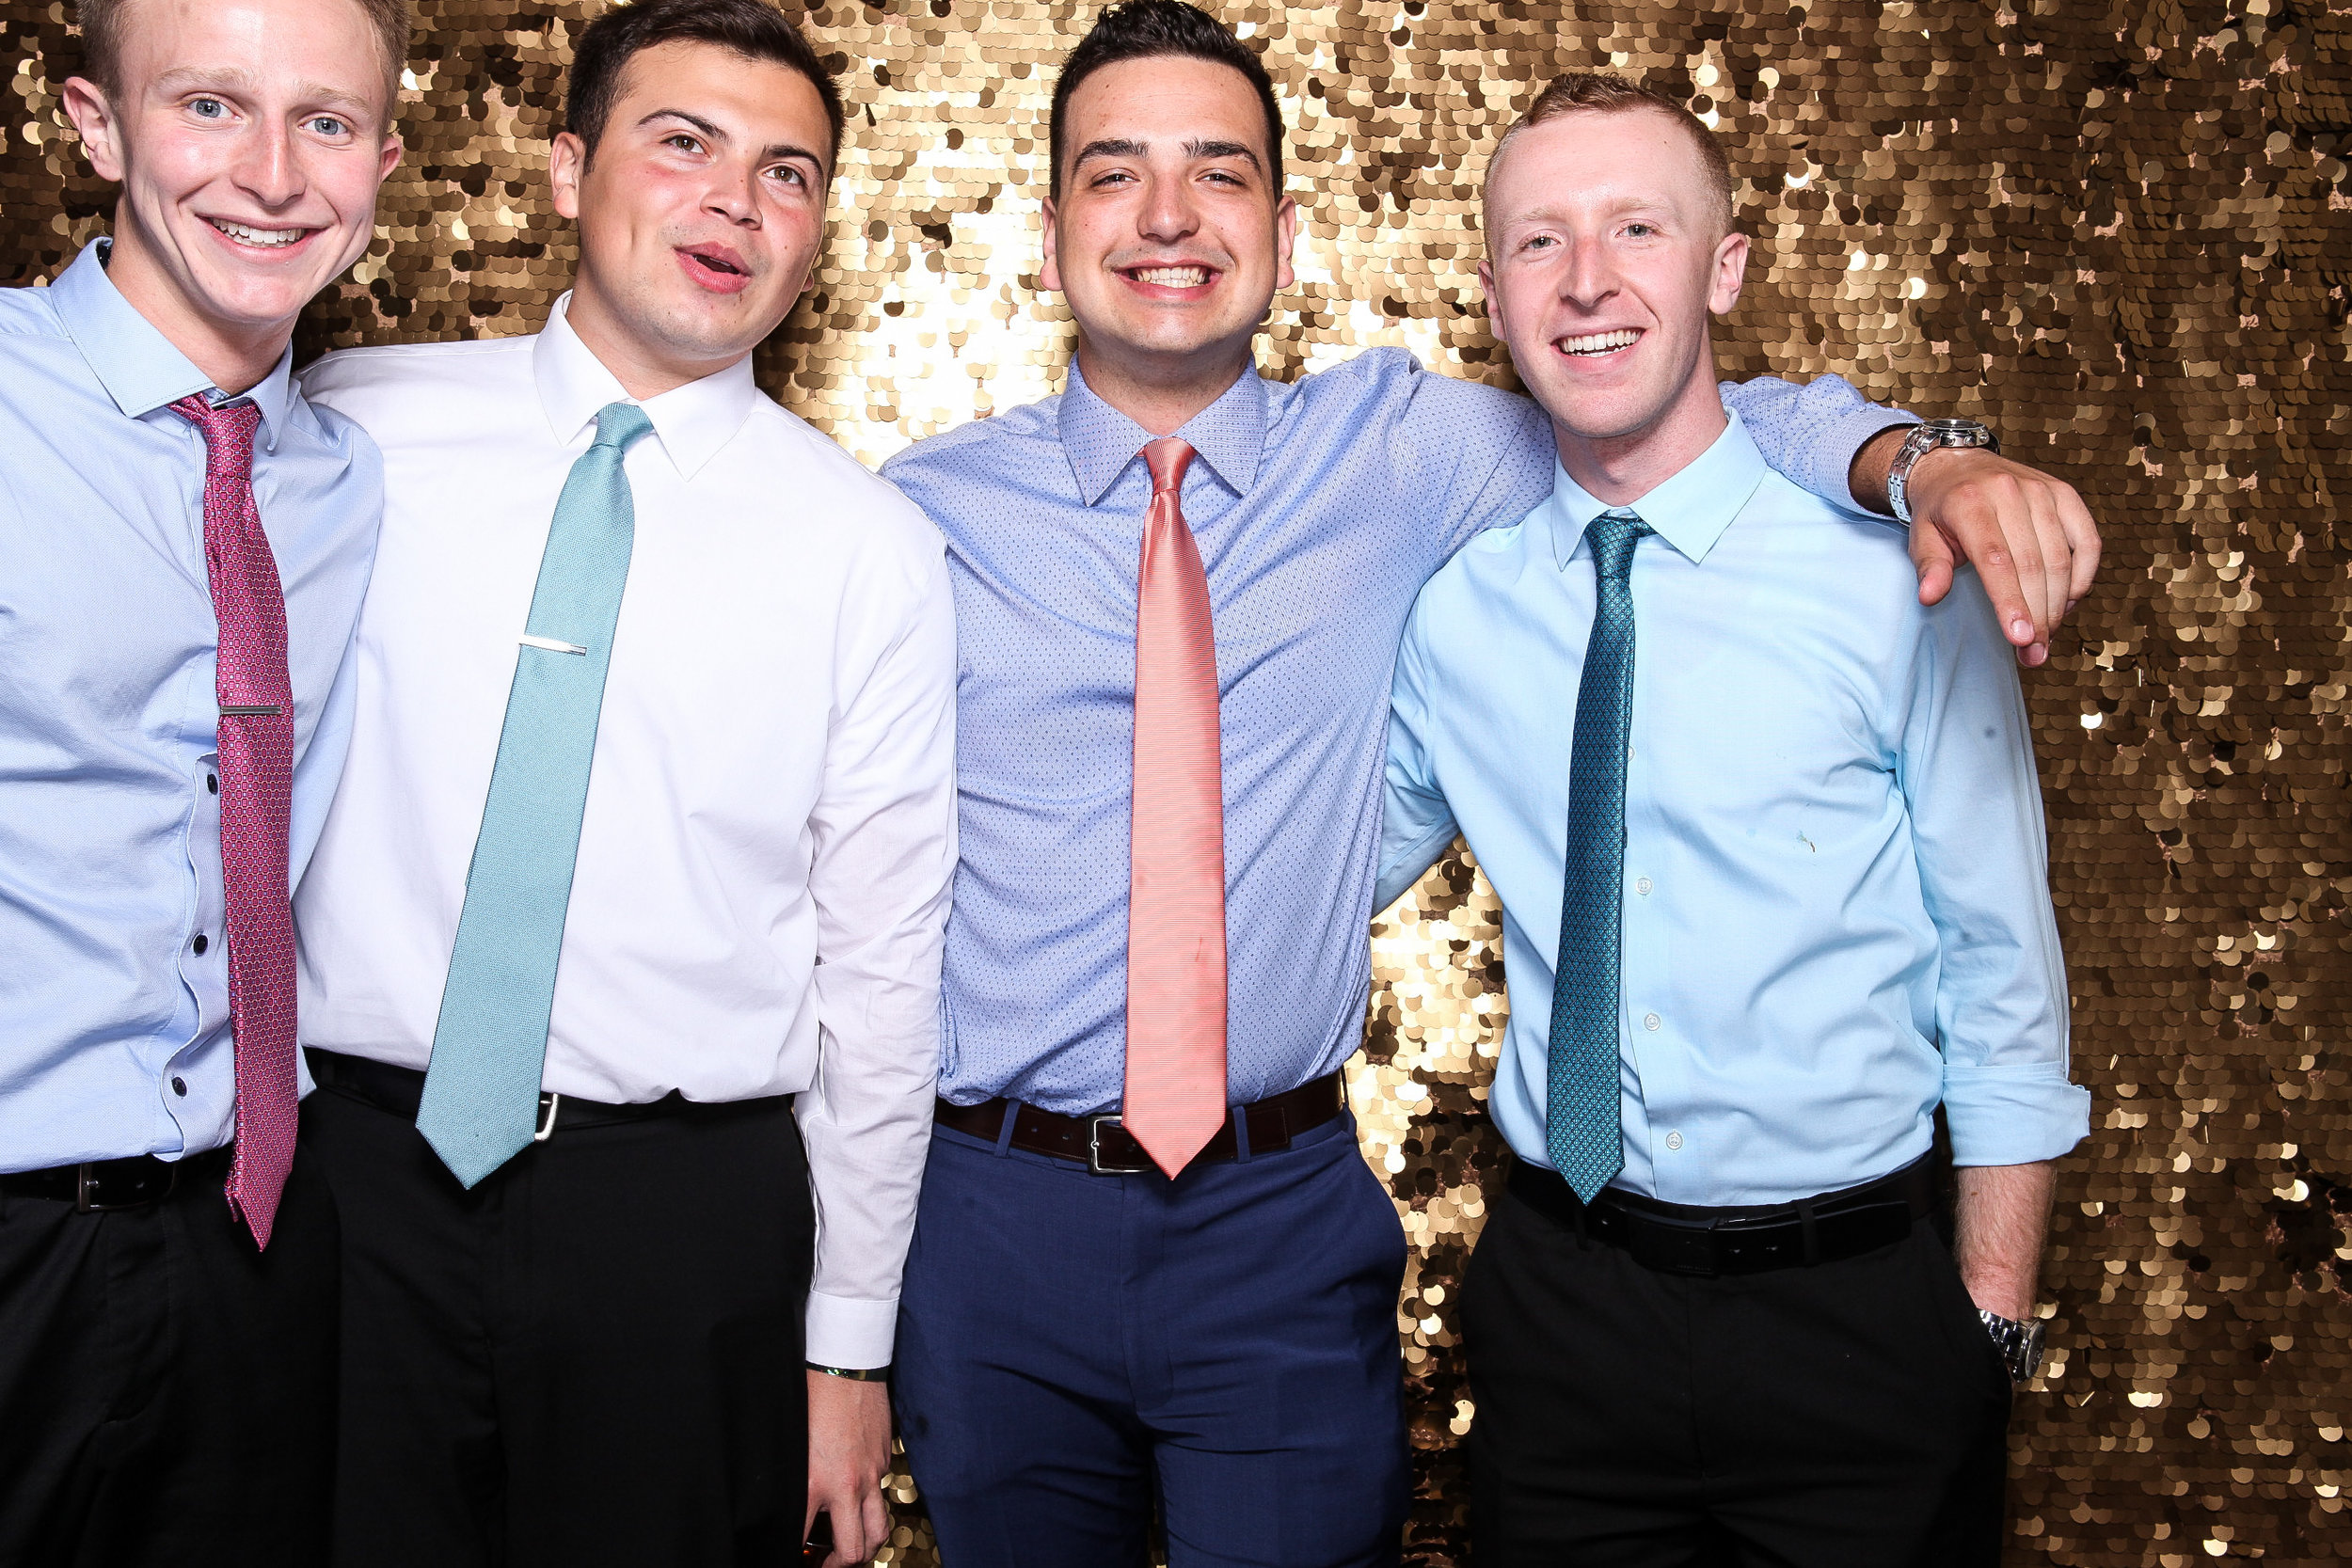 20190503_Adelphi_Senior_Formal-337.jpg